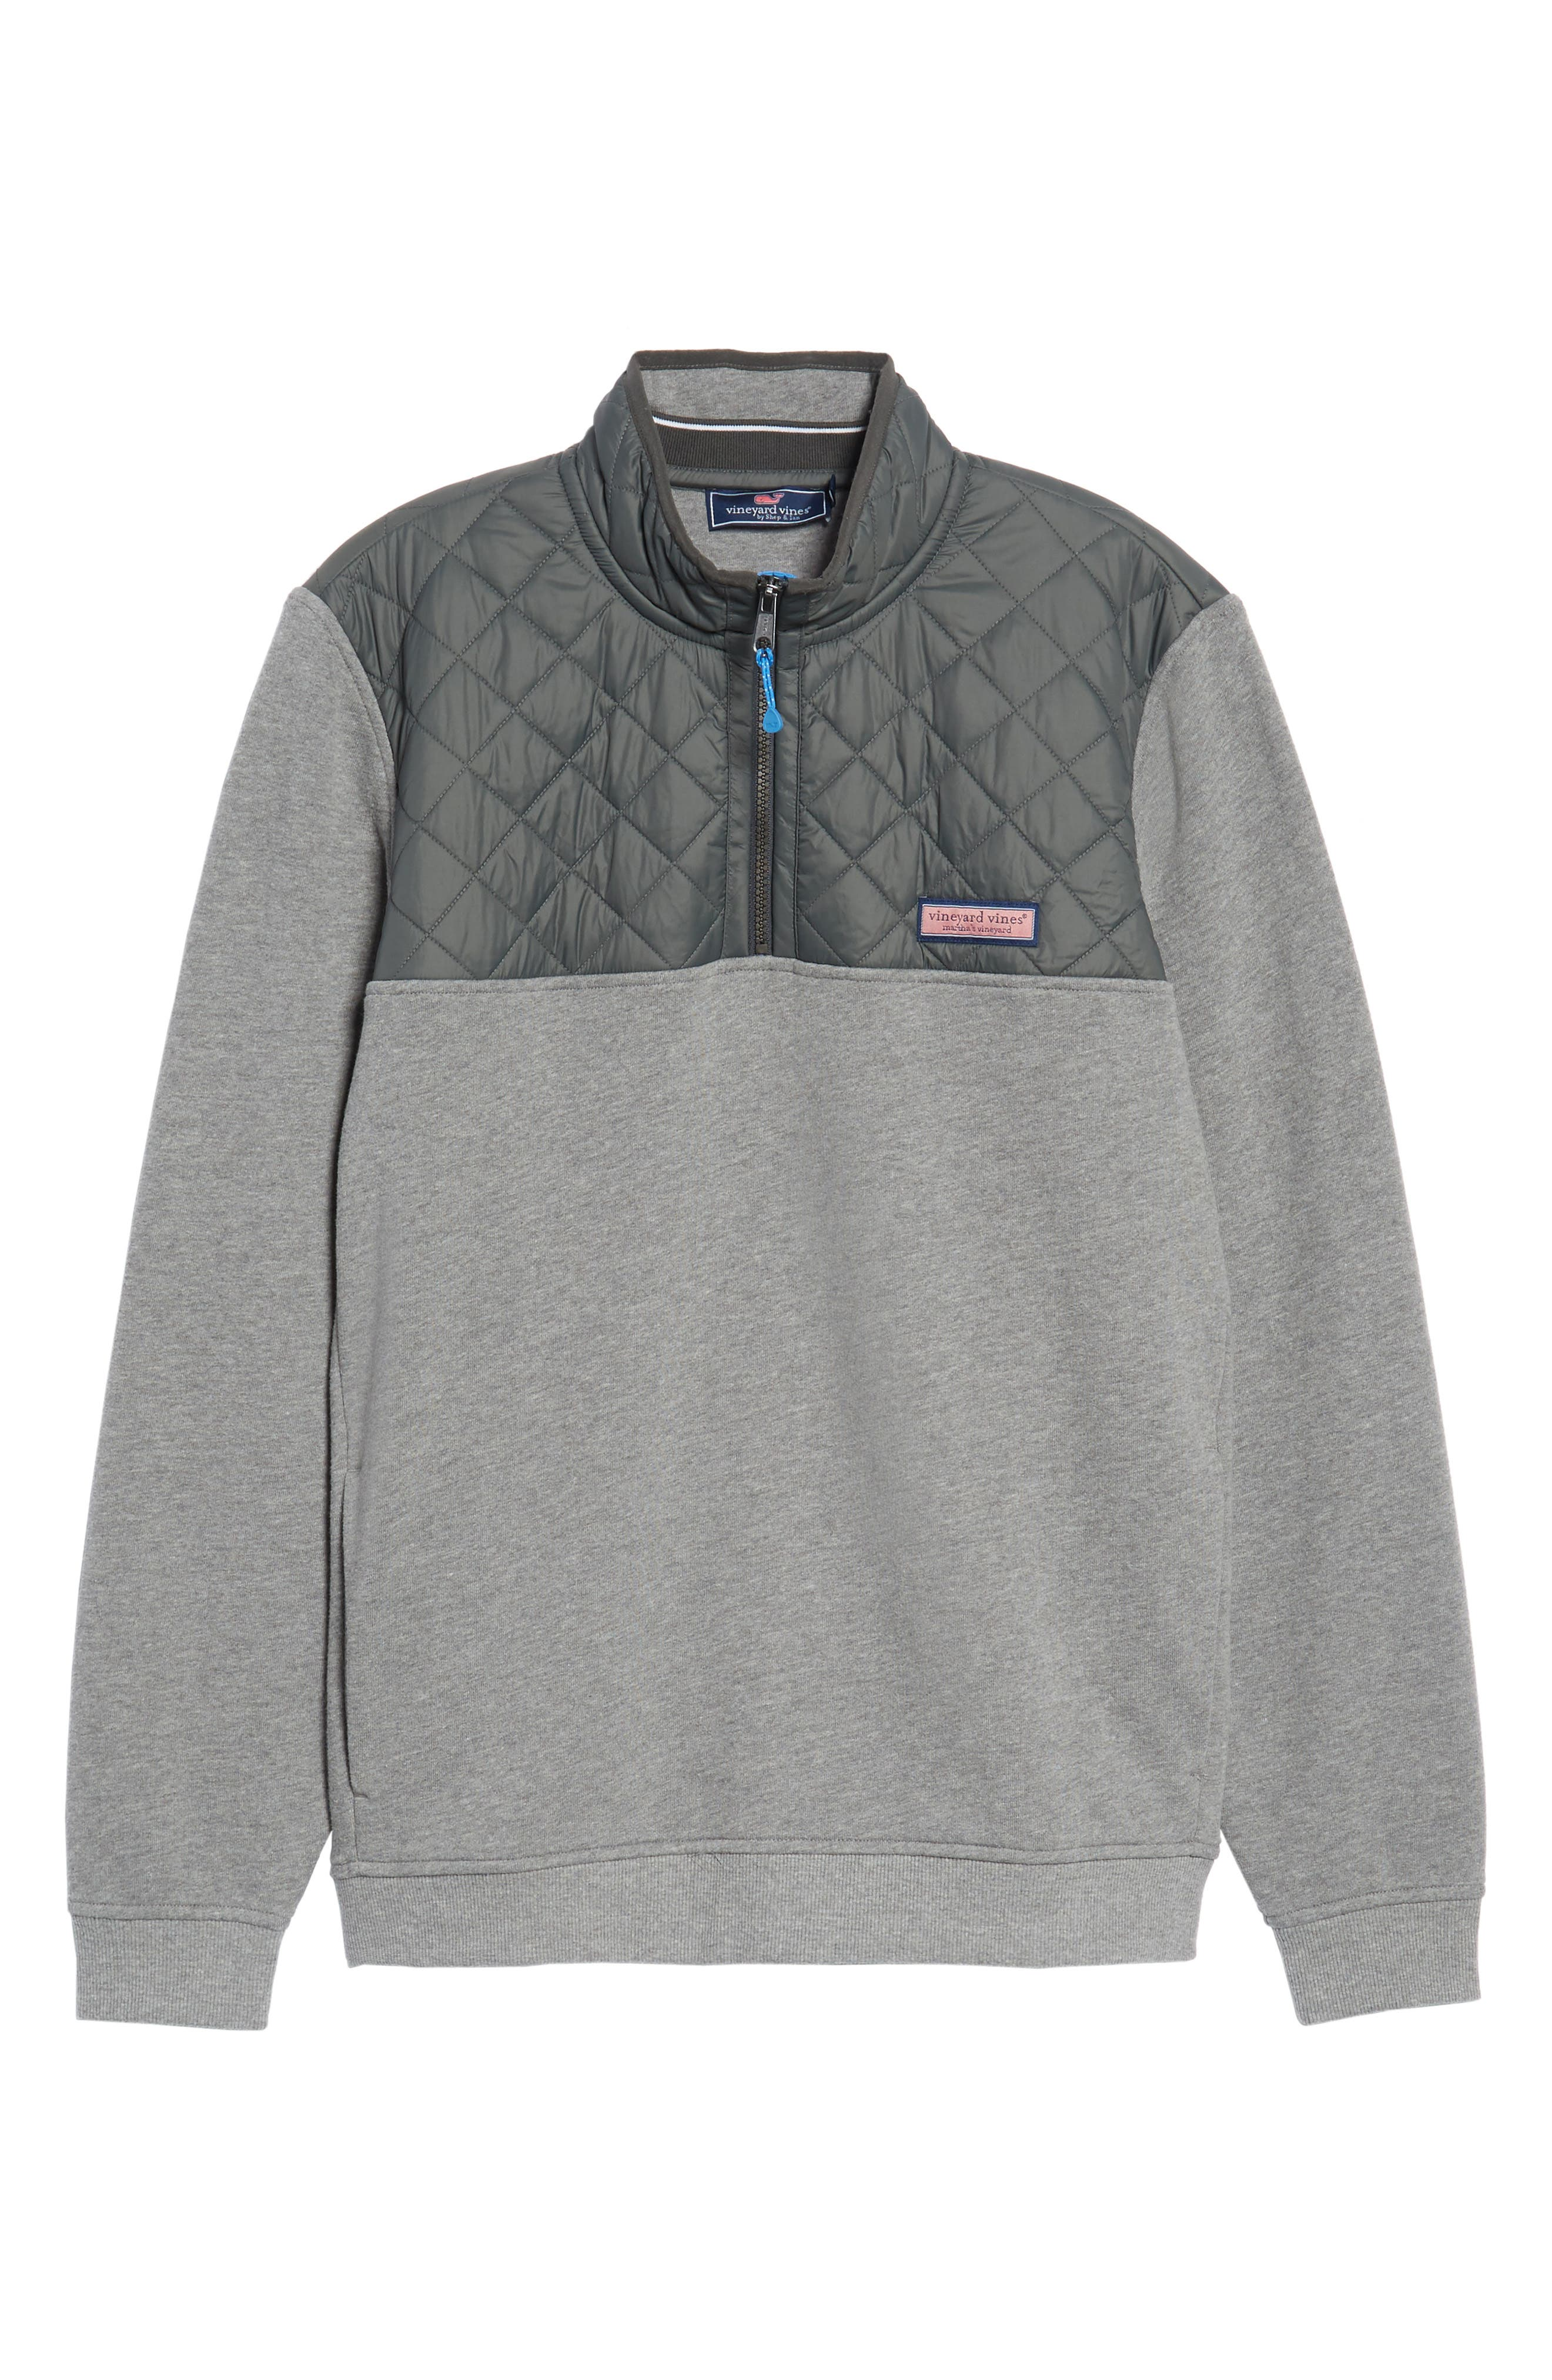 Shep Performance Quilted Yoke Quarter Zip Pullover,                             Alternate thumbnail 6, color,                             Medium Heather Grey